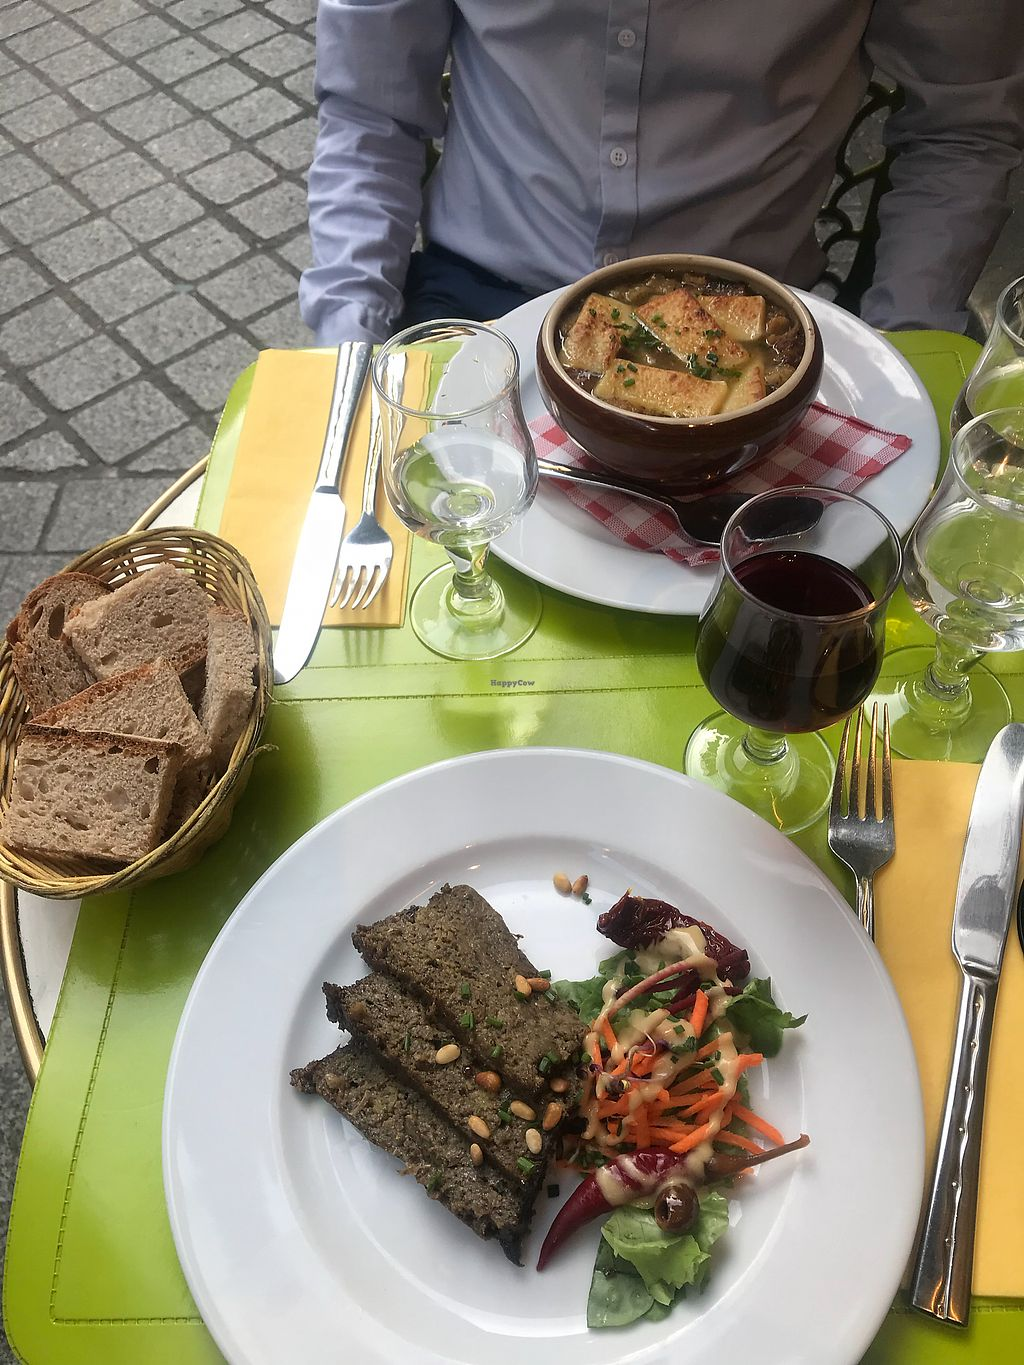 """Photo of Le Potager du Marais  by <a href=""""/members/profile/smd2688"""">smd2688</a> <br/>Mushroom pate and Onion soup  <br/> April 18, 2018  - <a href='/contact/abuse/image/4106/387841'>Report</a>"""